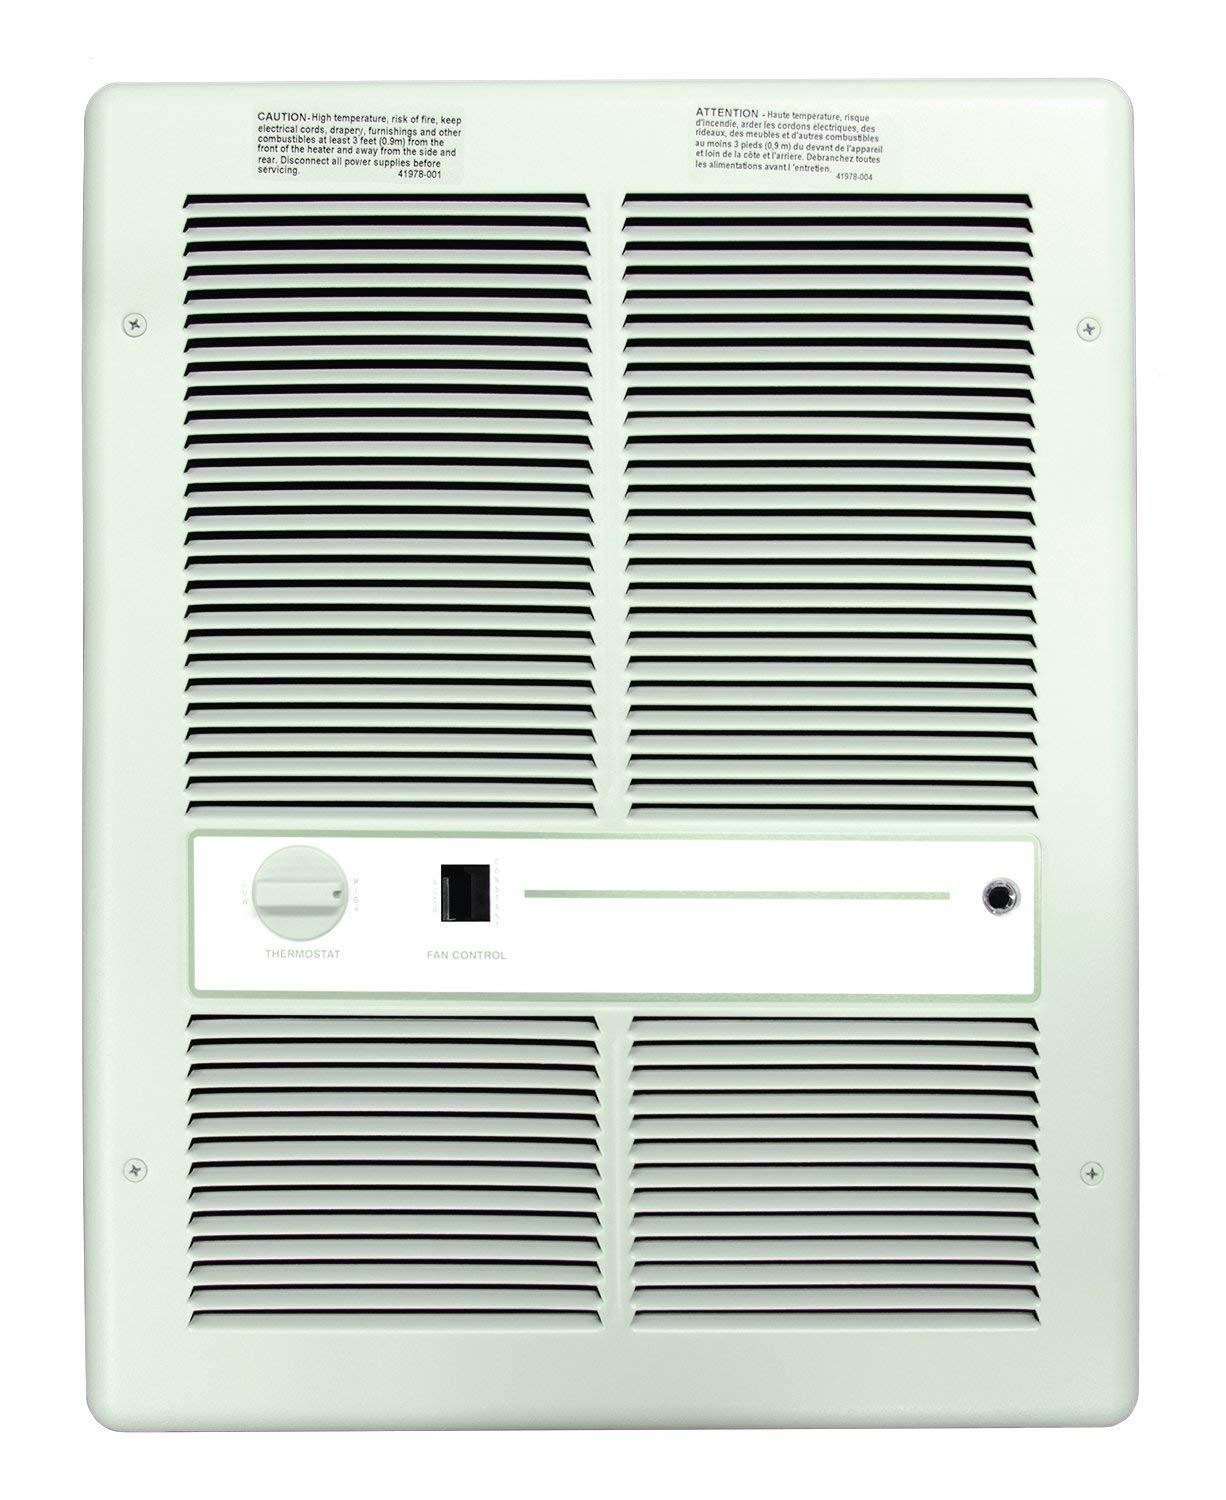 TPI 1500W 120V 3310 Series Fan Forced Wall Heater (White) - With Summer Fan Switch - 2 Pole Thermostat - E3313T2SRPW